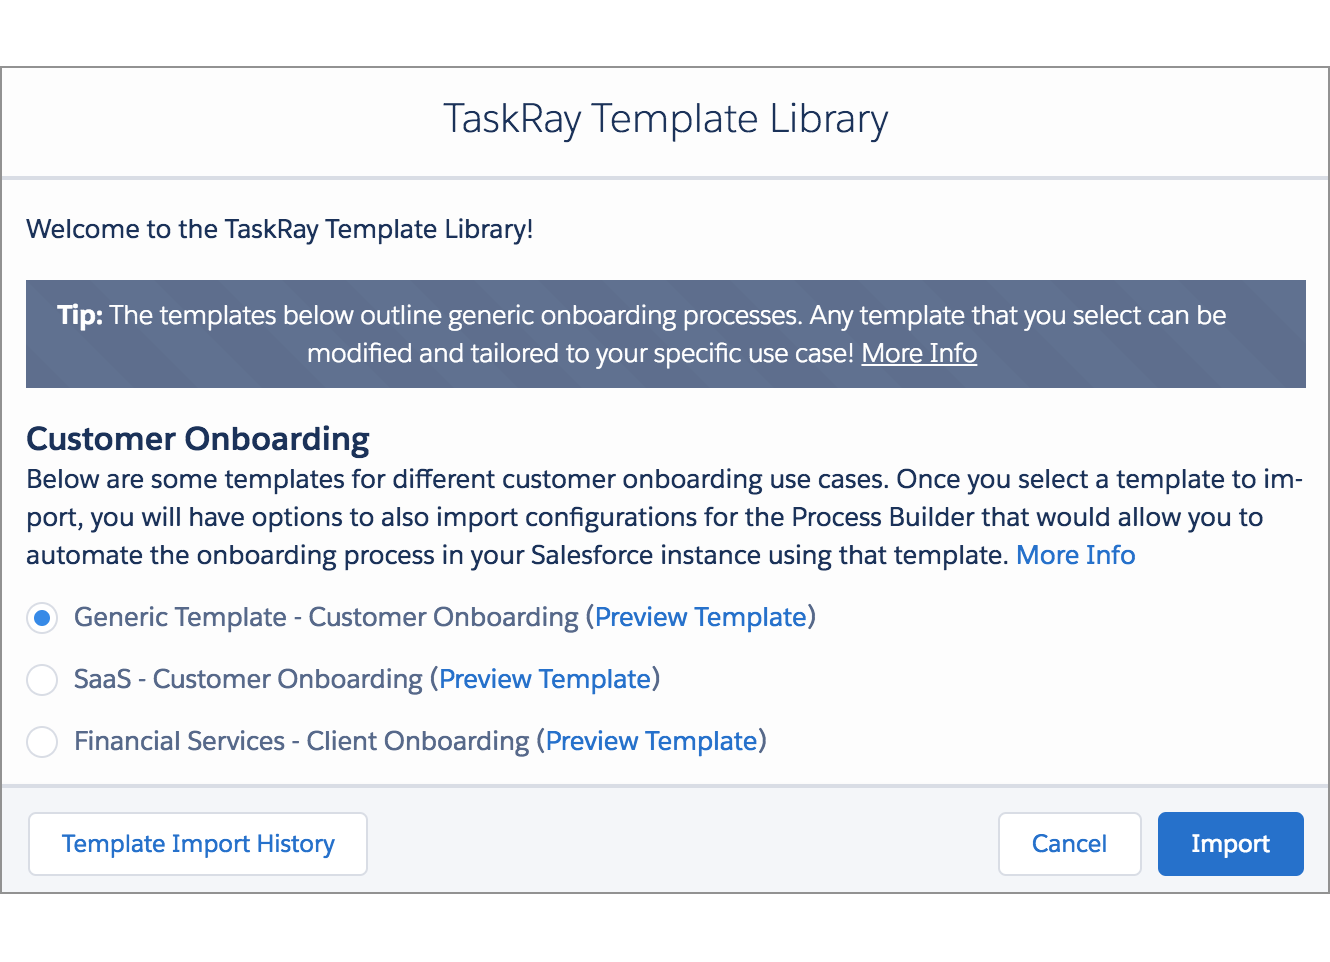 template_library_modal.png